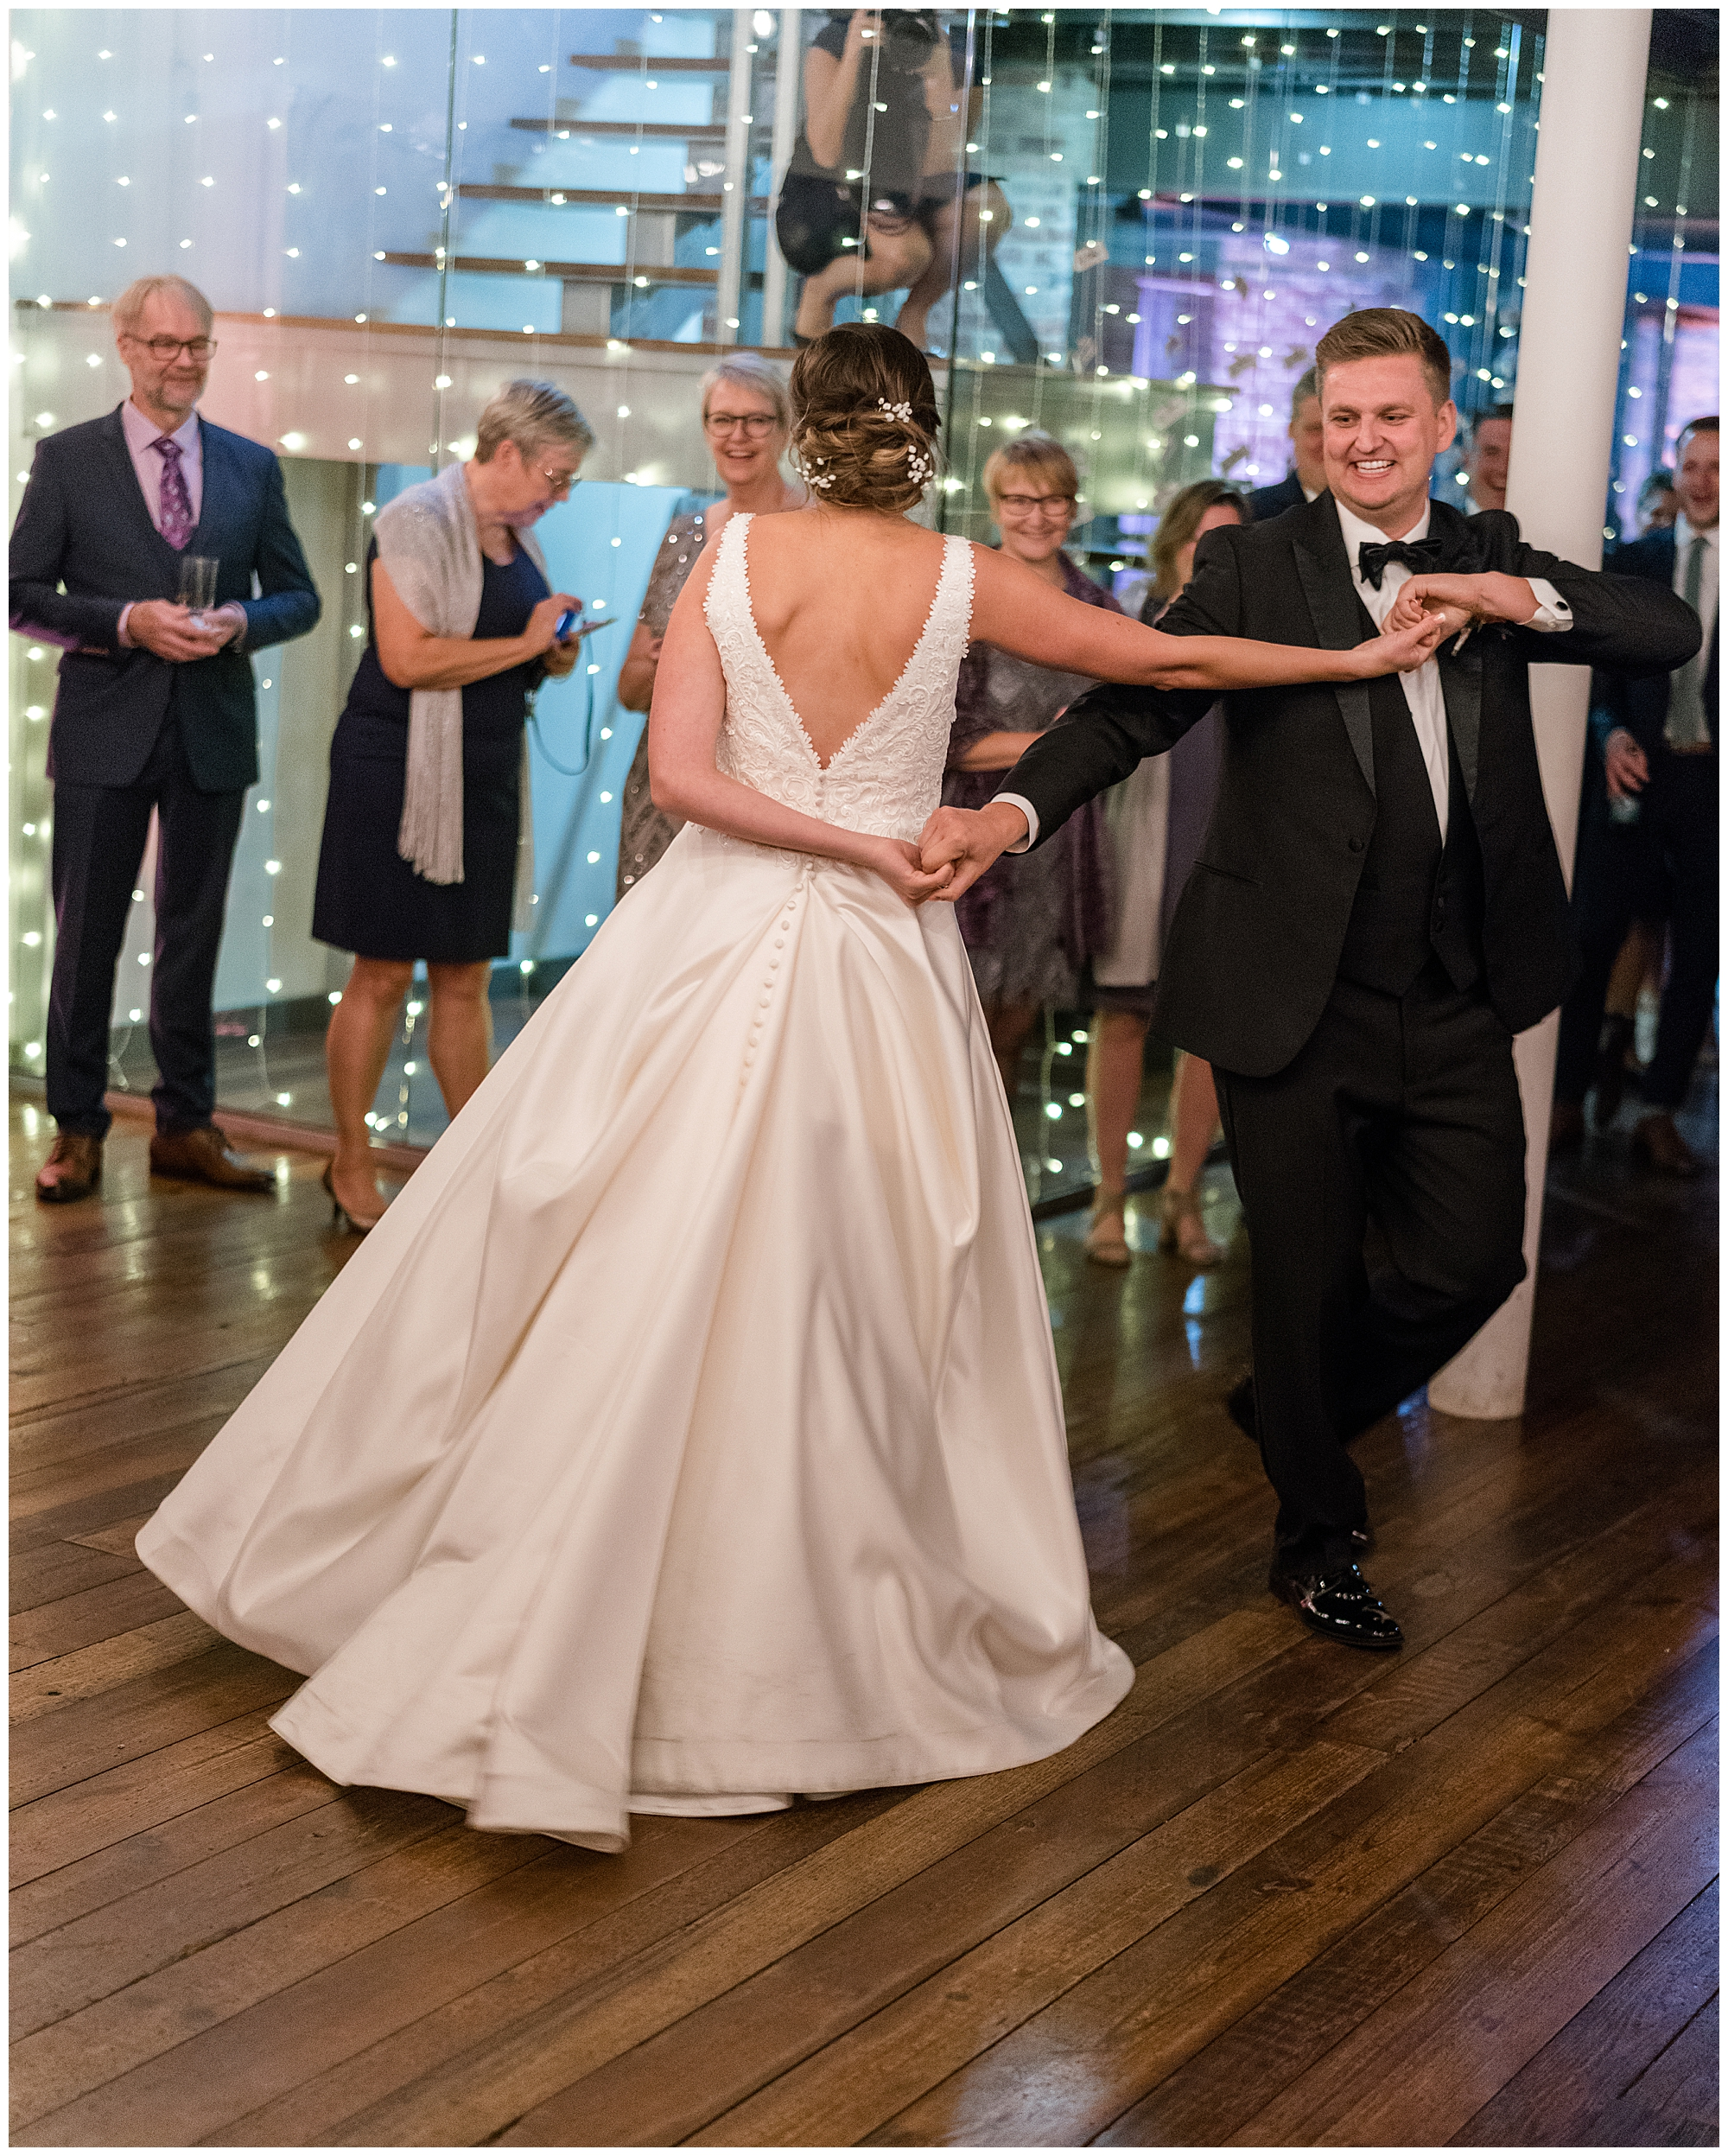 A bride and groom dance at Toolboc DC during their Washington DC wedding.